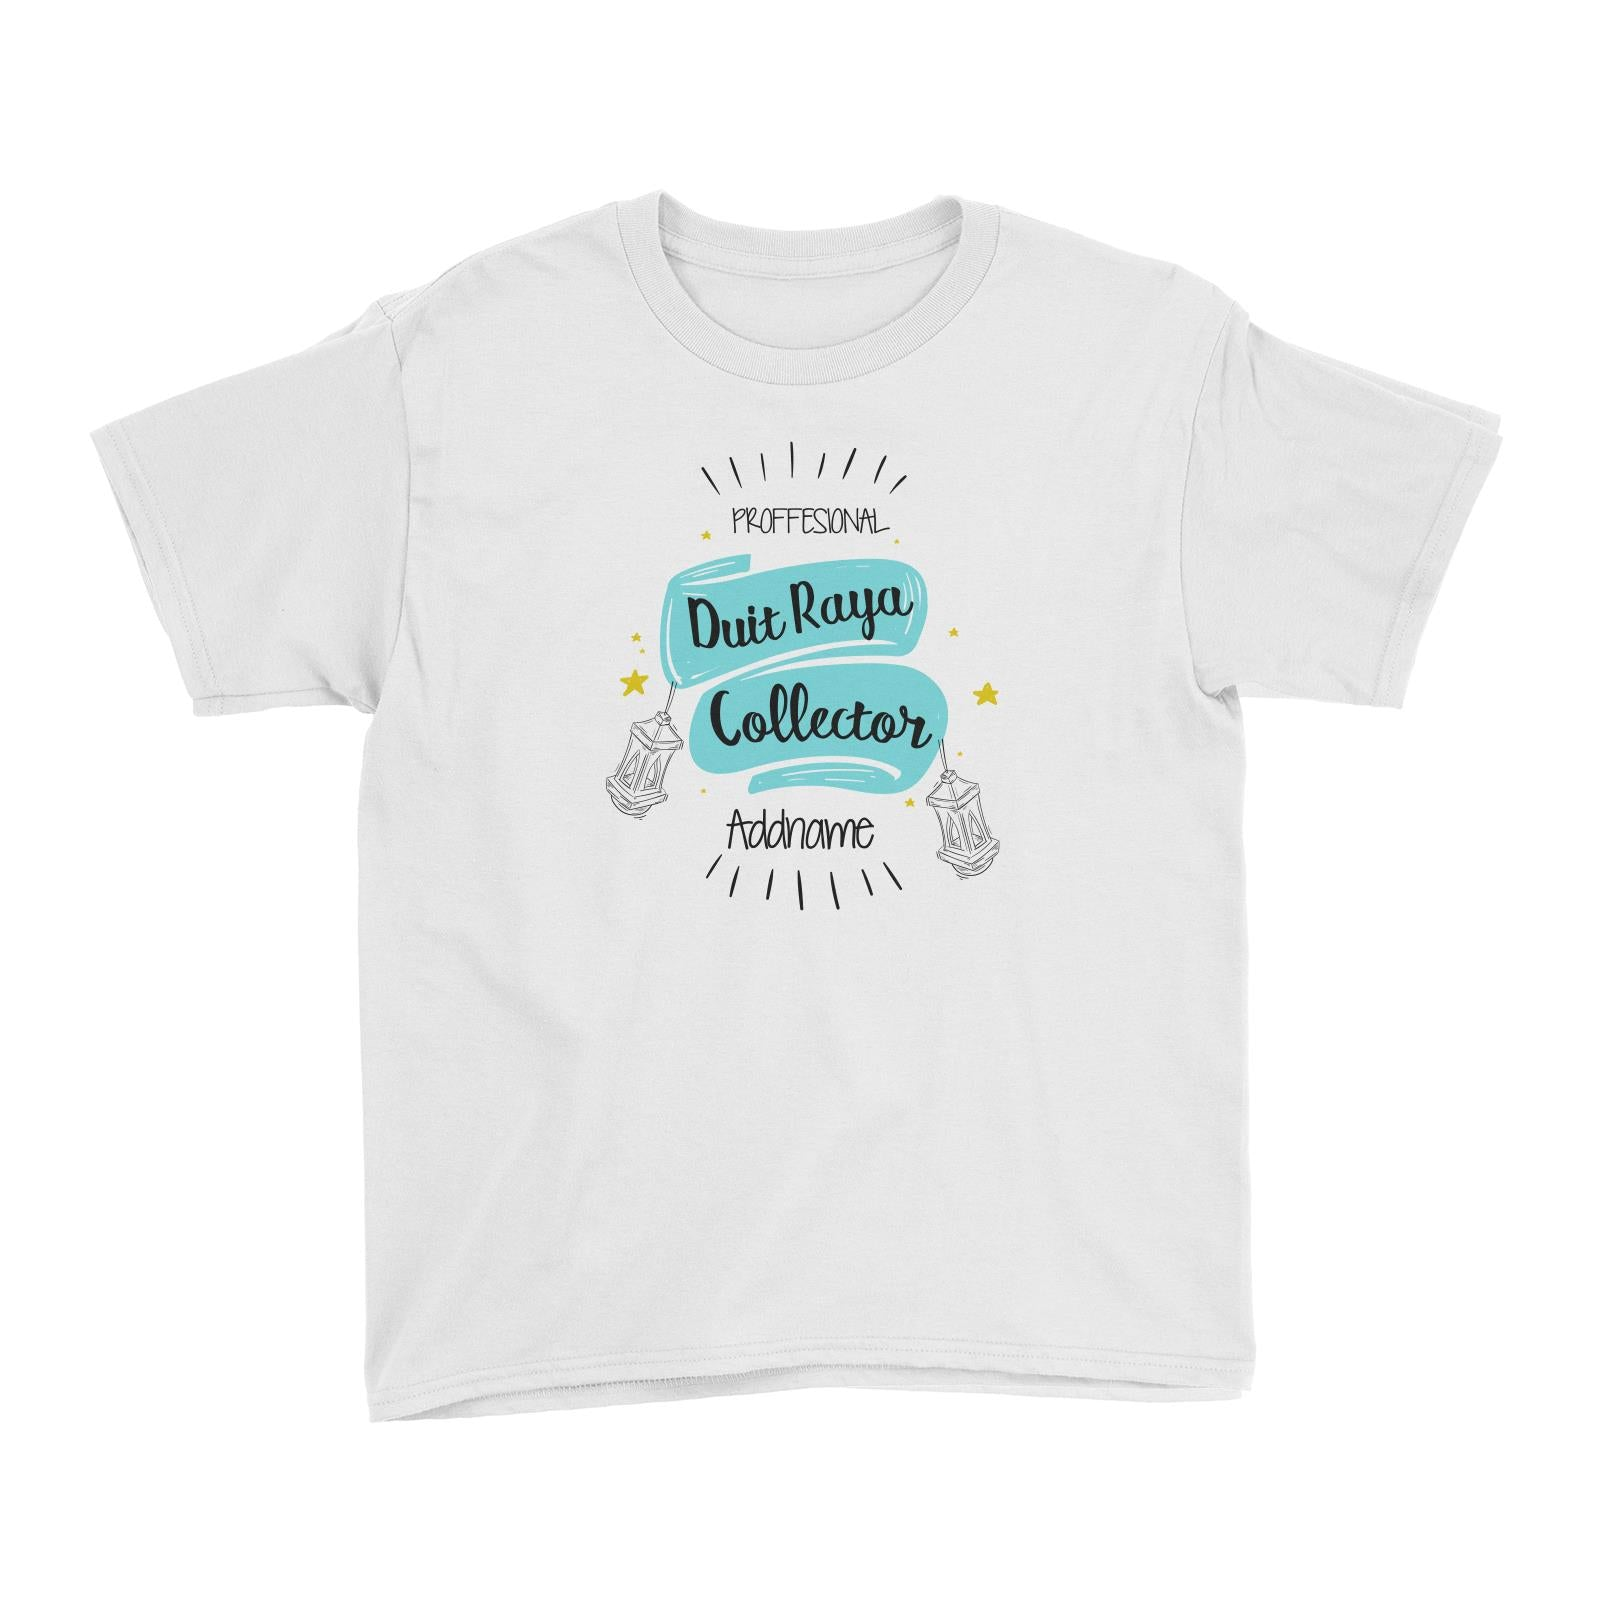 Raya Banner Professional Duit Raya Collector Addname Kid's T-Shirt